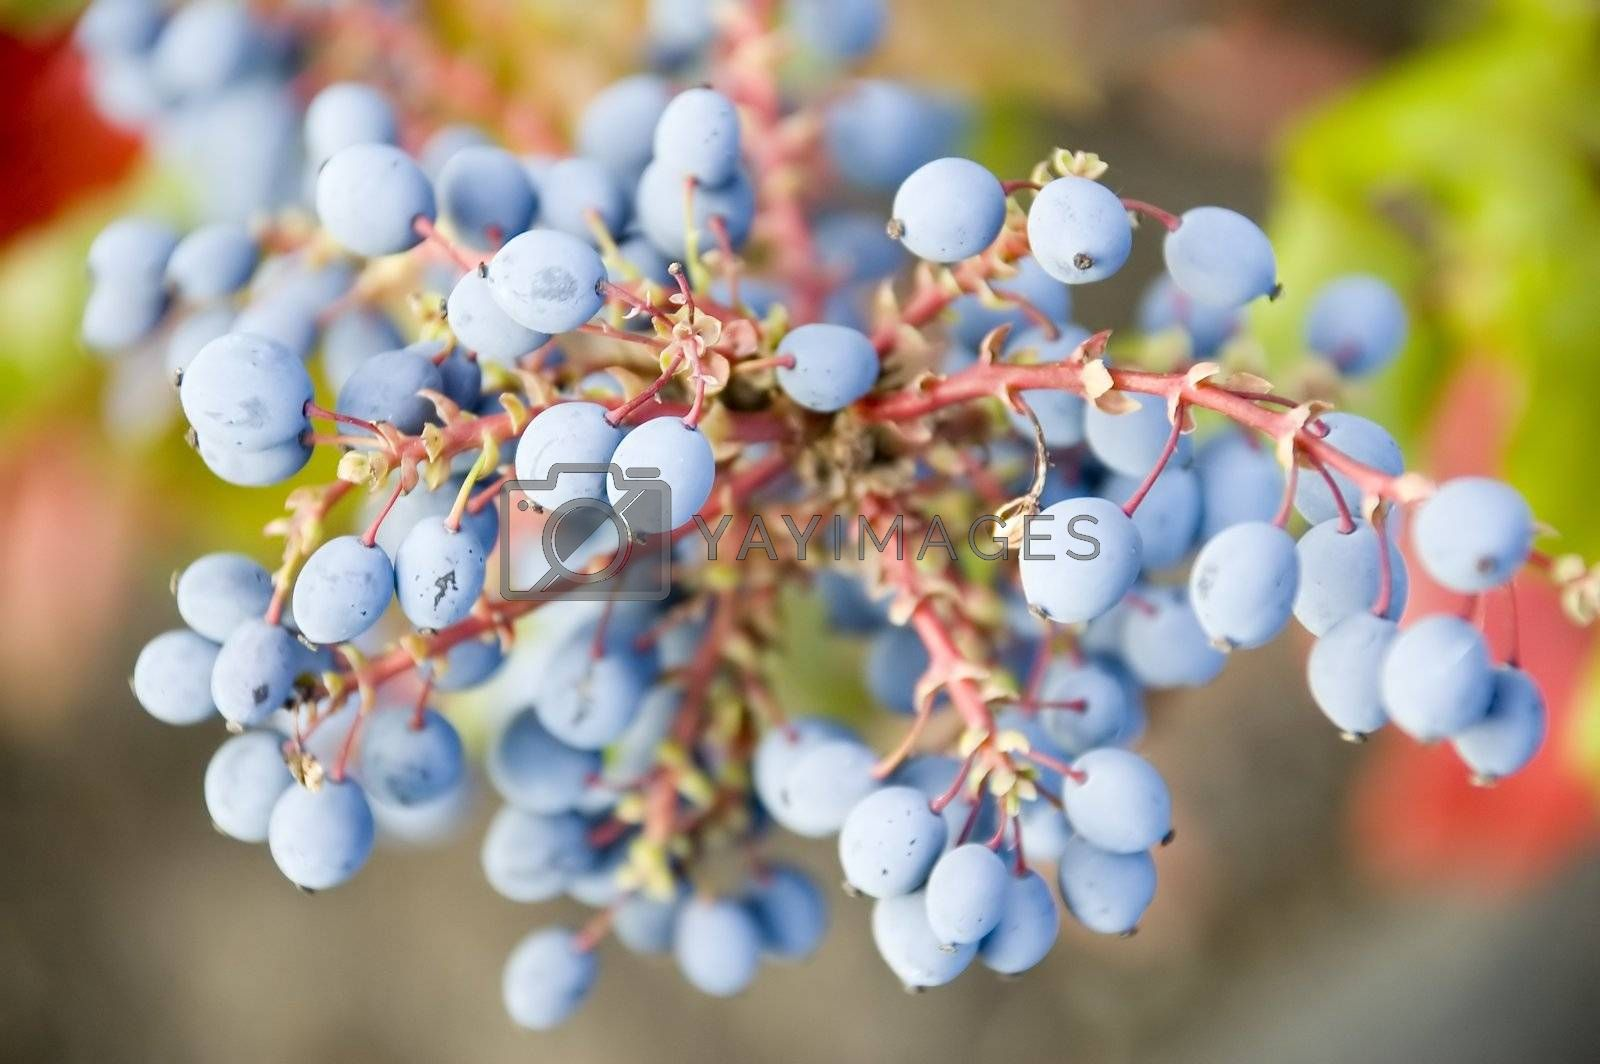 Blue berries on an ornamental plant with red stems and green leaves.